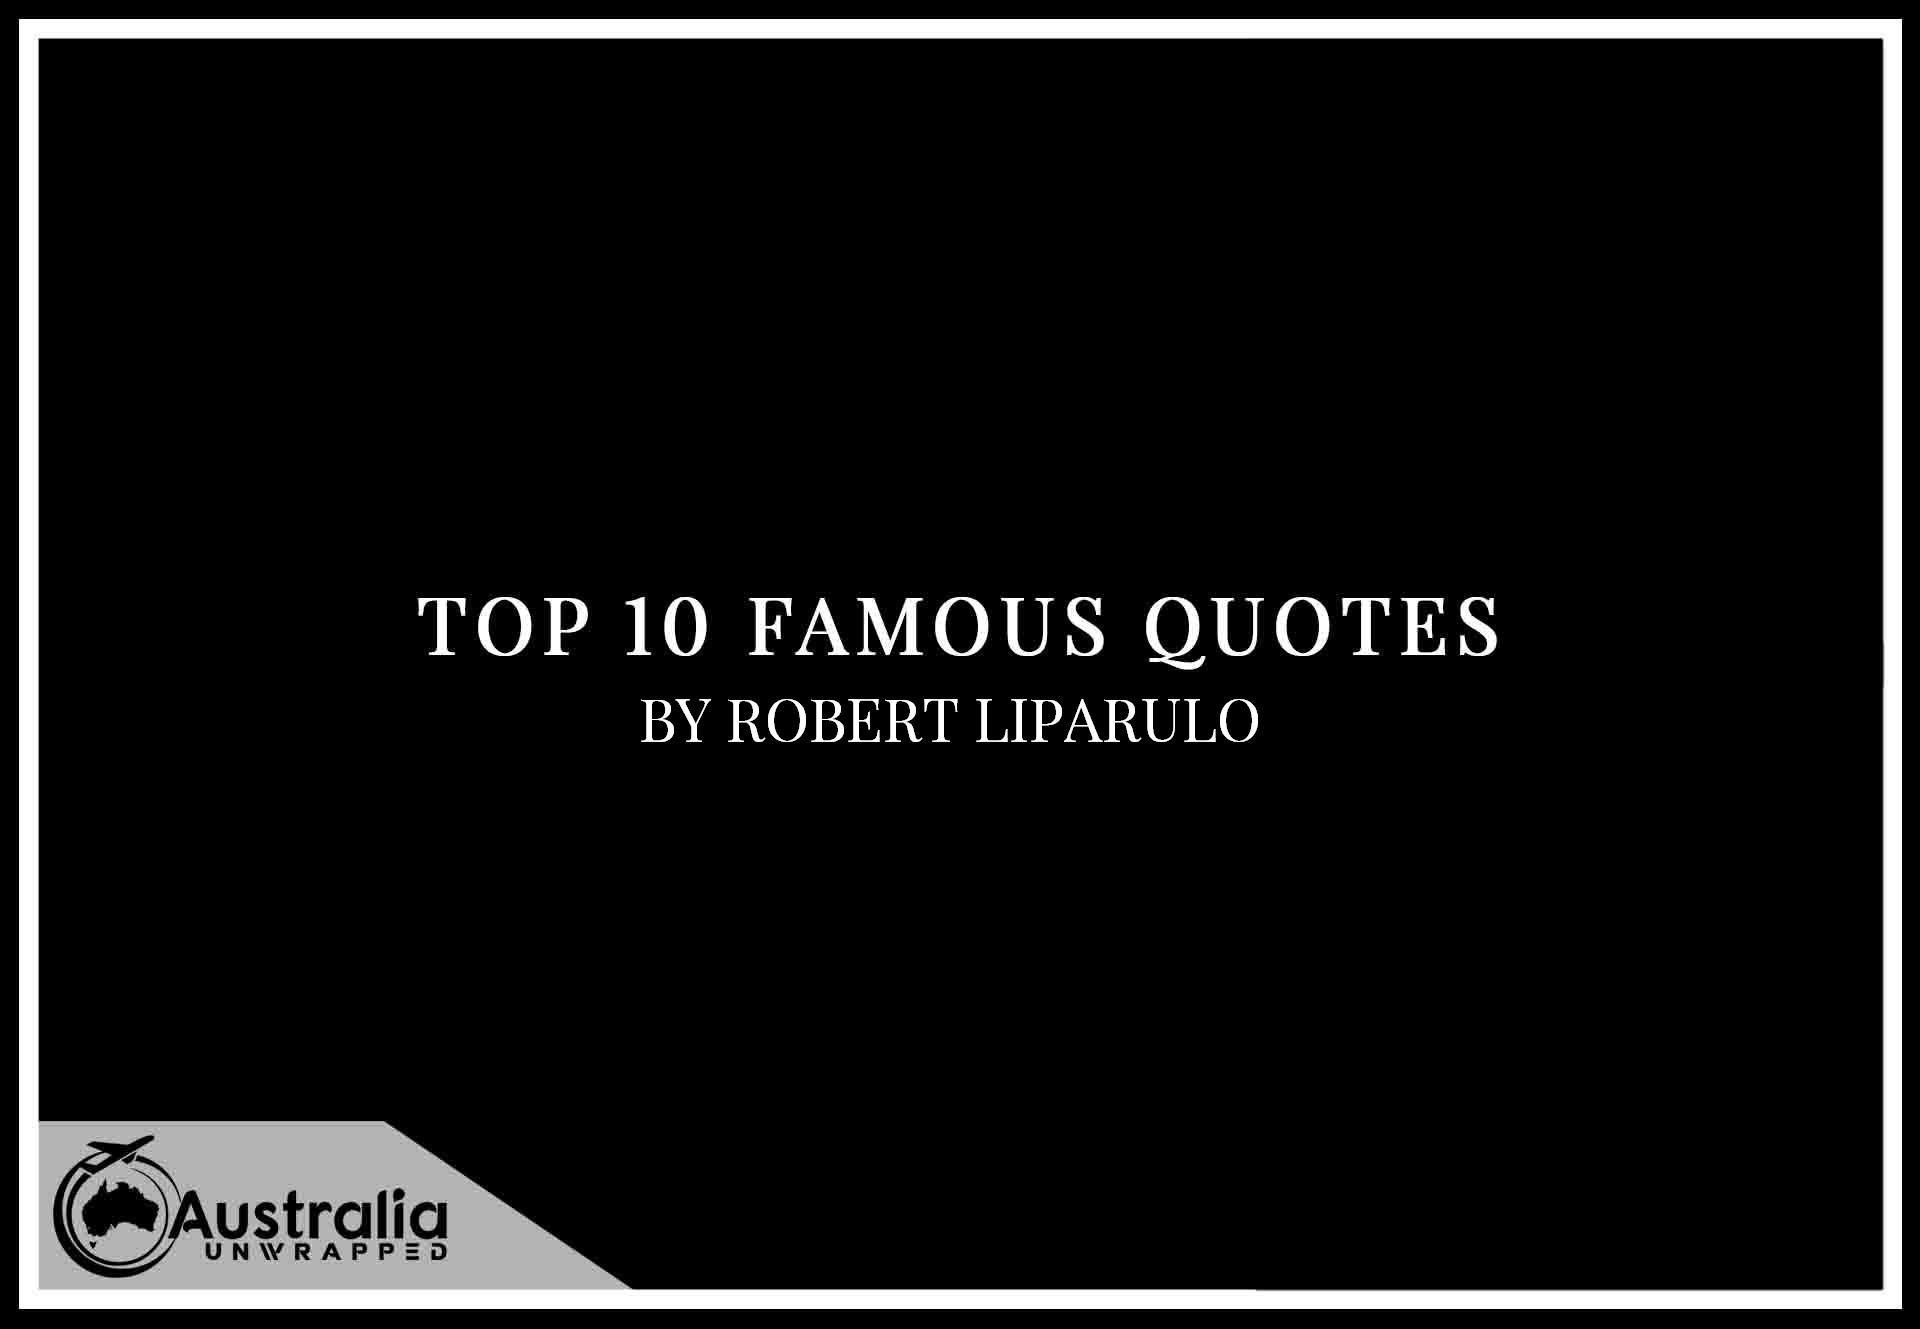 Top 10 Famous Quotes by Author Robert Liparulo